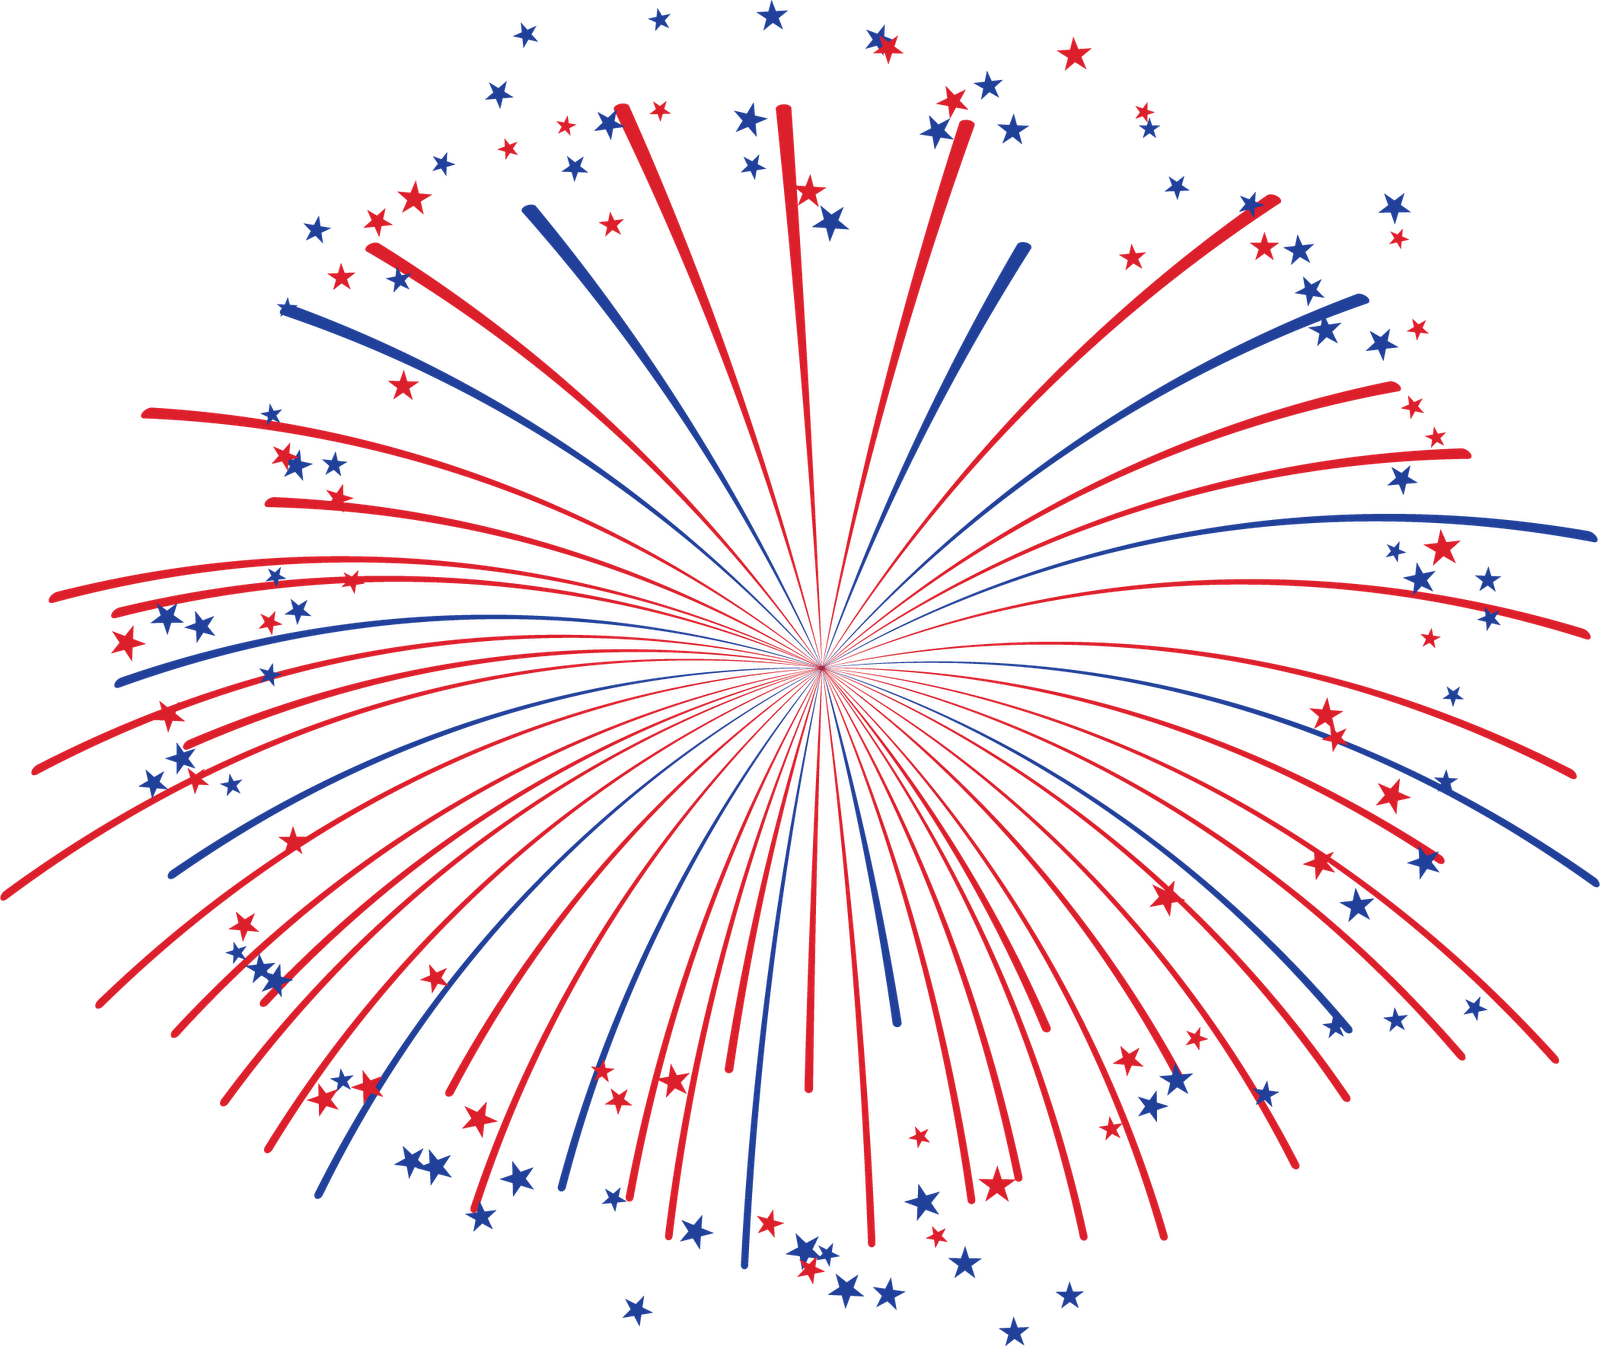 hight resolution of fireworks clip art fireworks animations clipart downloadclipart org 4